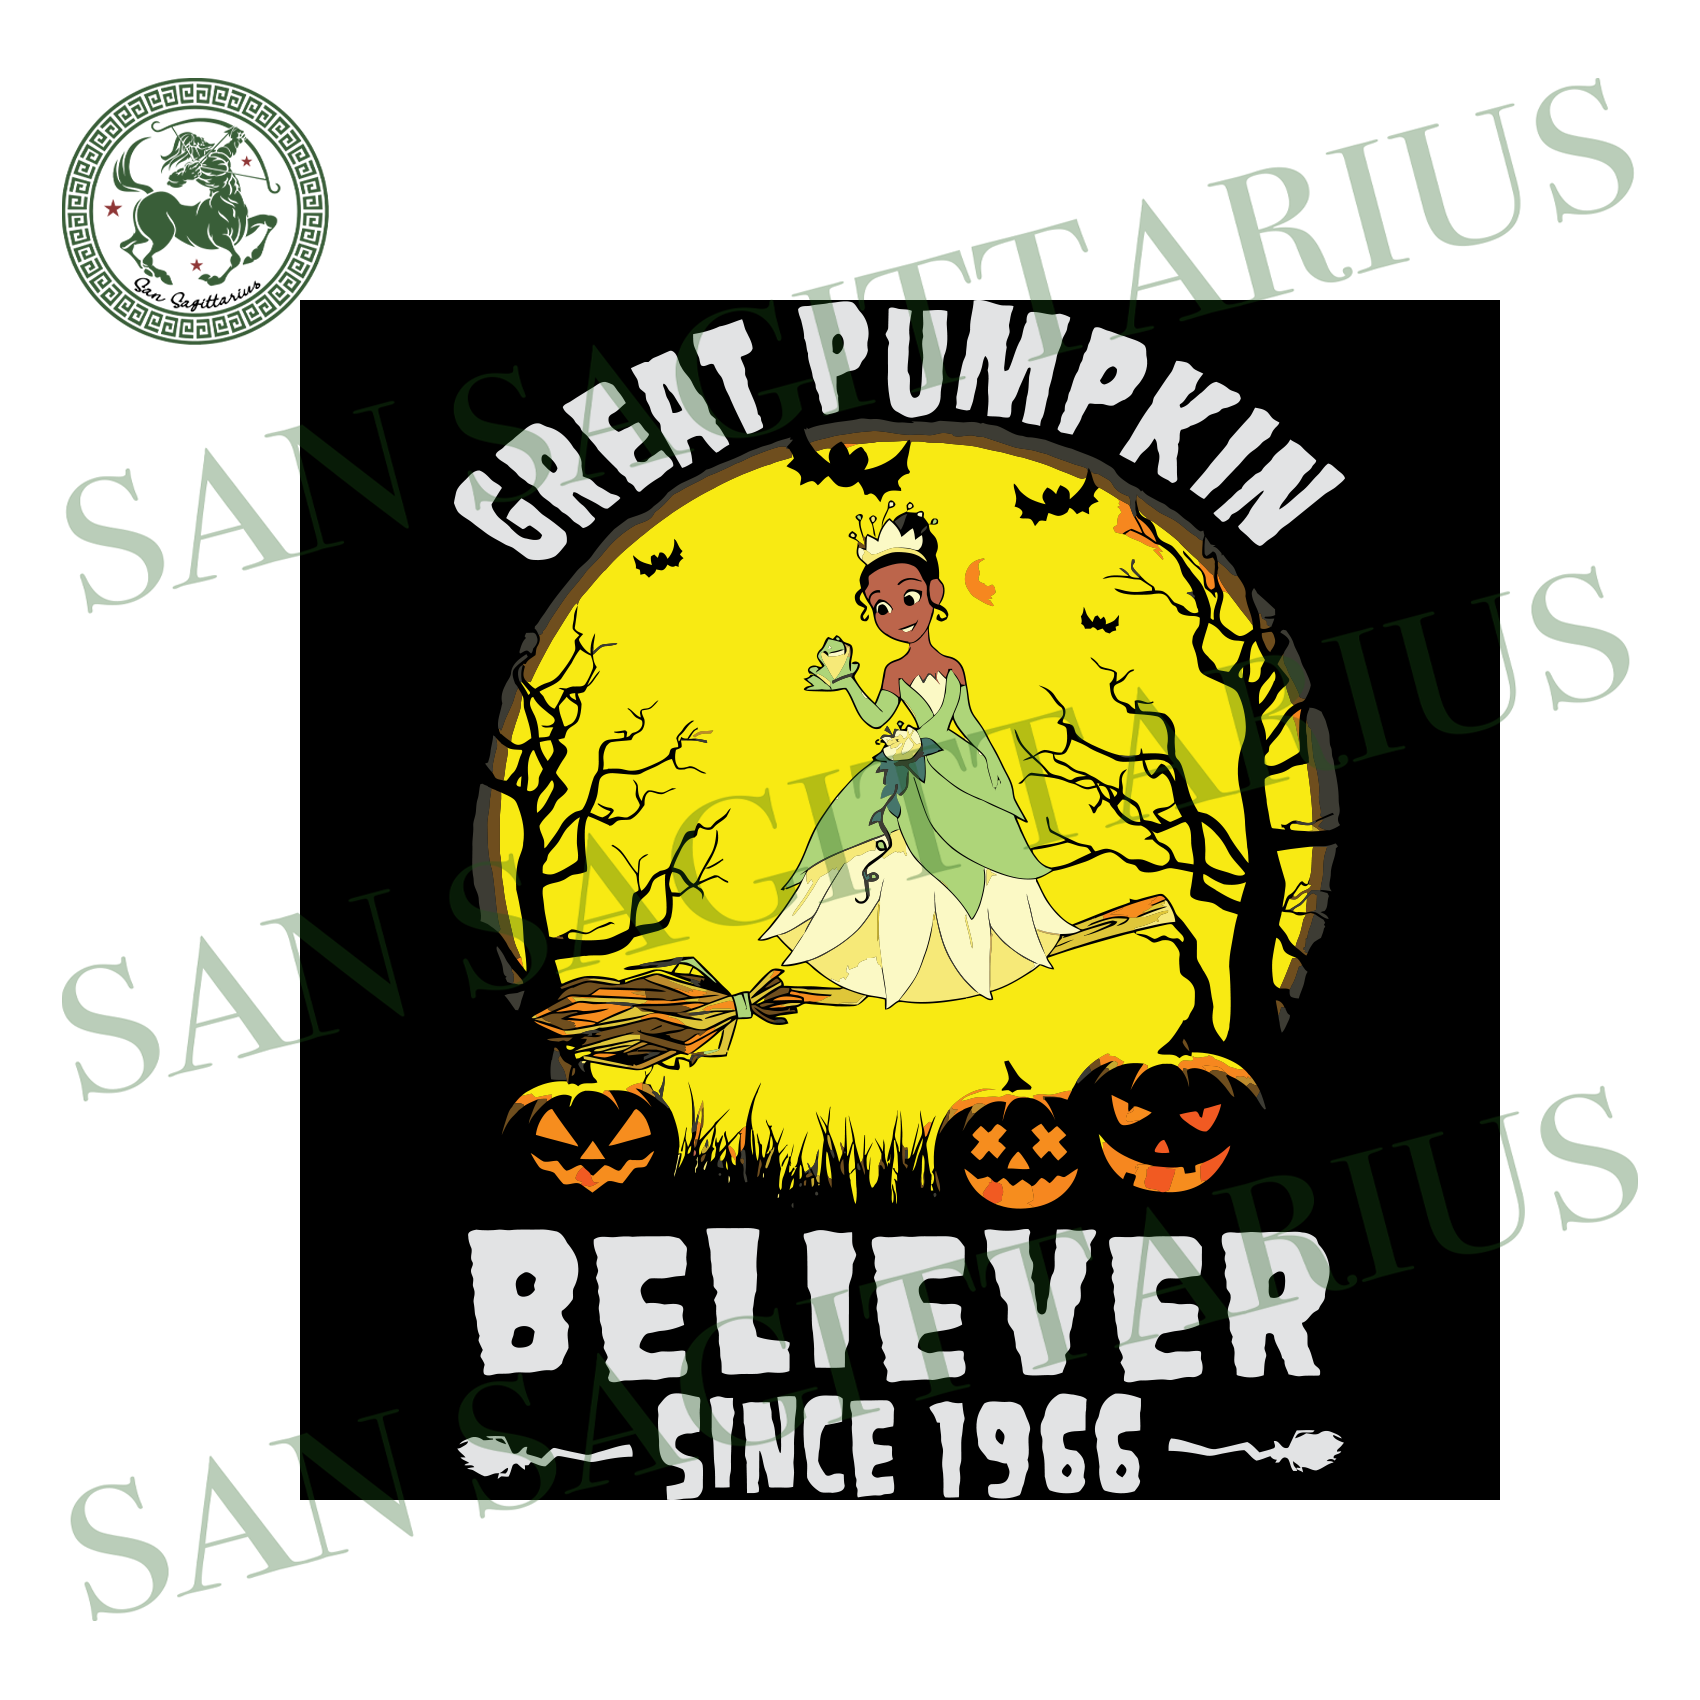 Princess And The Frog Great Pumpkin Believer Since 1966, Halloween Svg, Happy Halloween, Halloween Gift, Halloween Shirt, Halloween Icon, Halloween Vector, Nightmare Svg, Tiana Princess